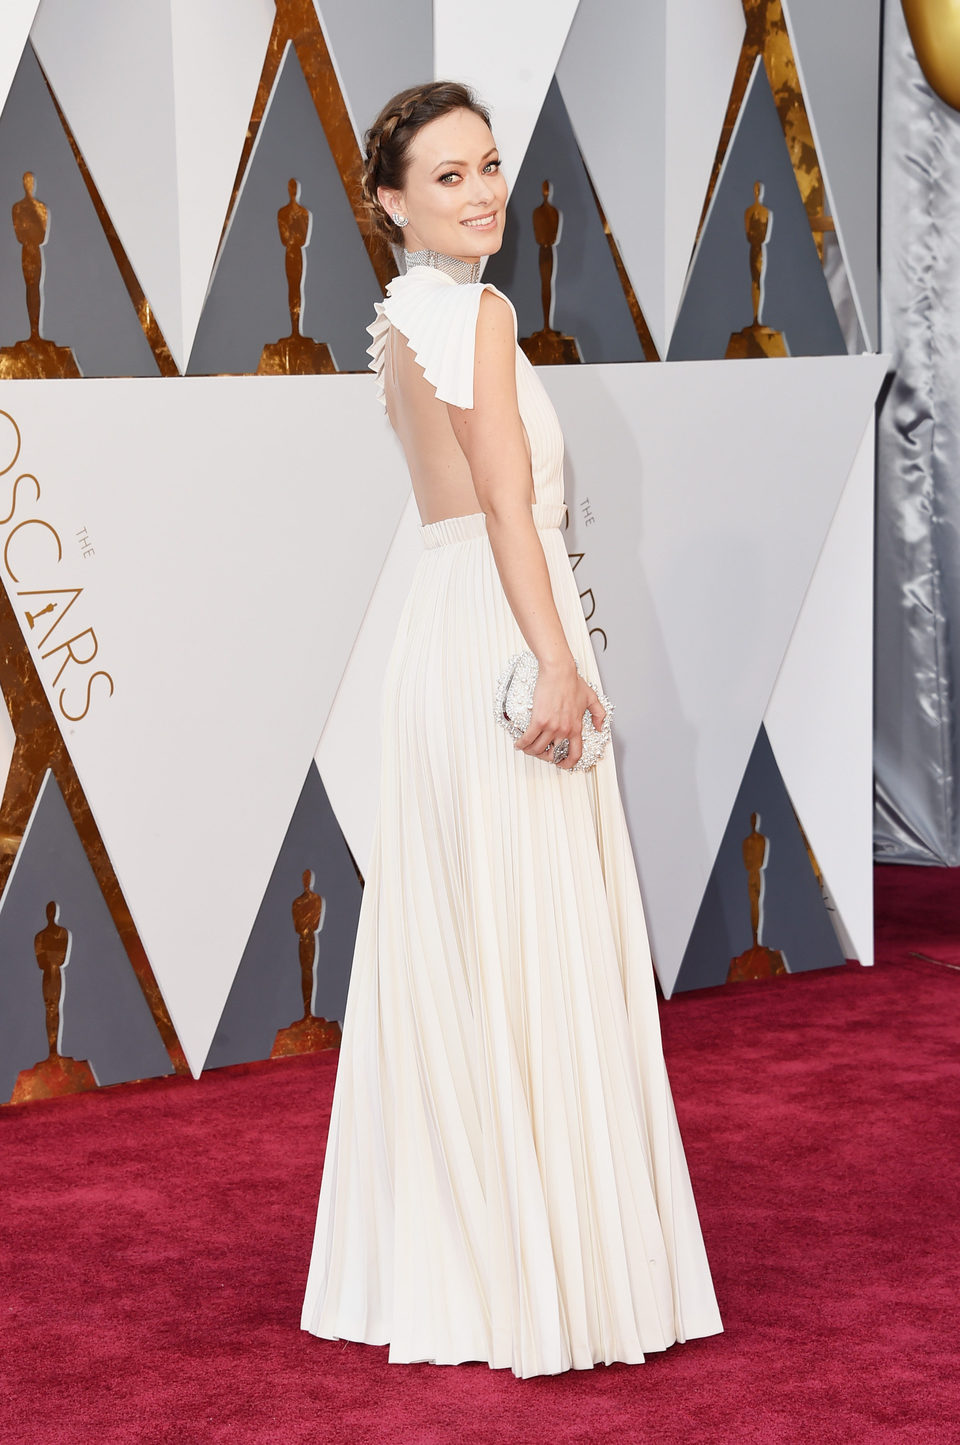 Olivia Wilde at the Oscars 2016 red carpet